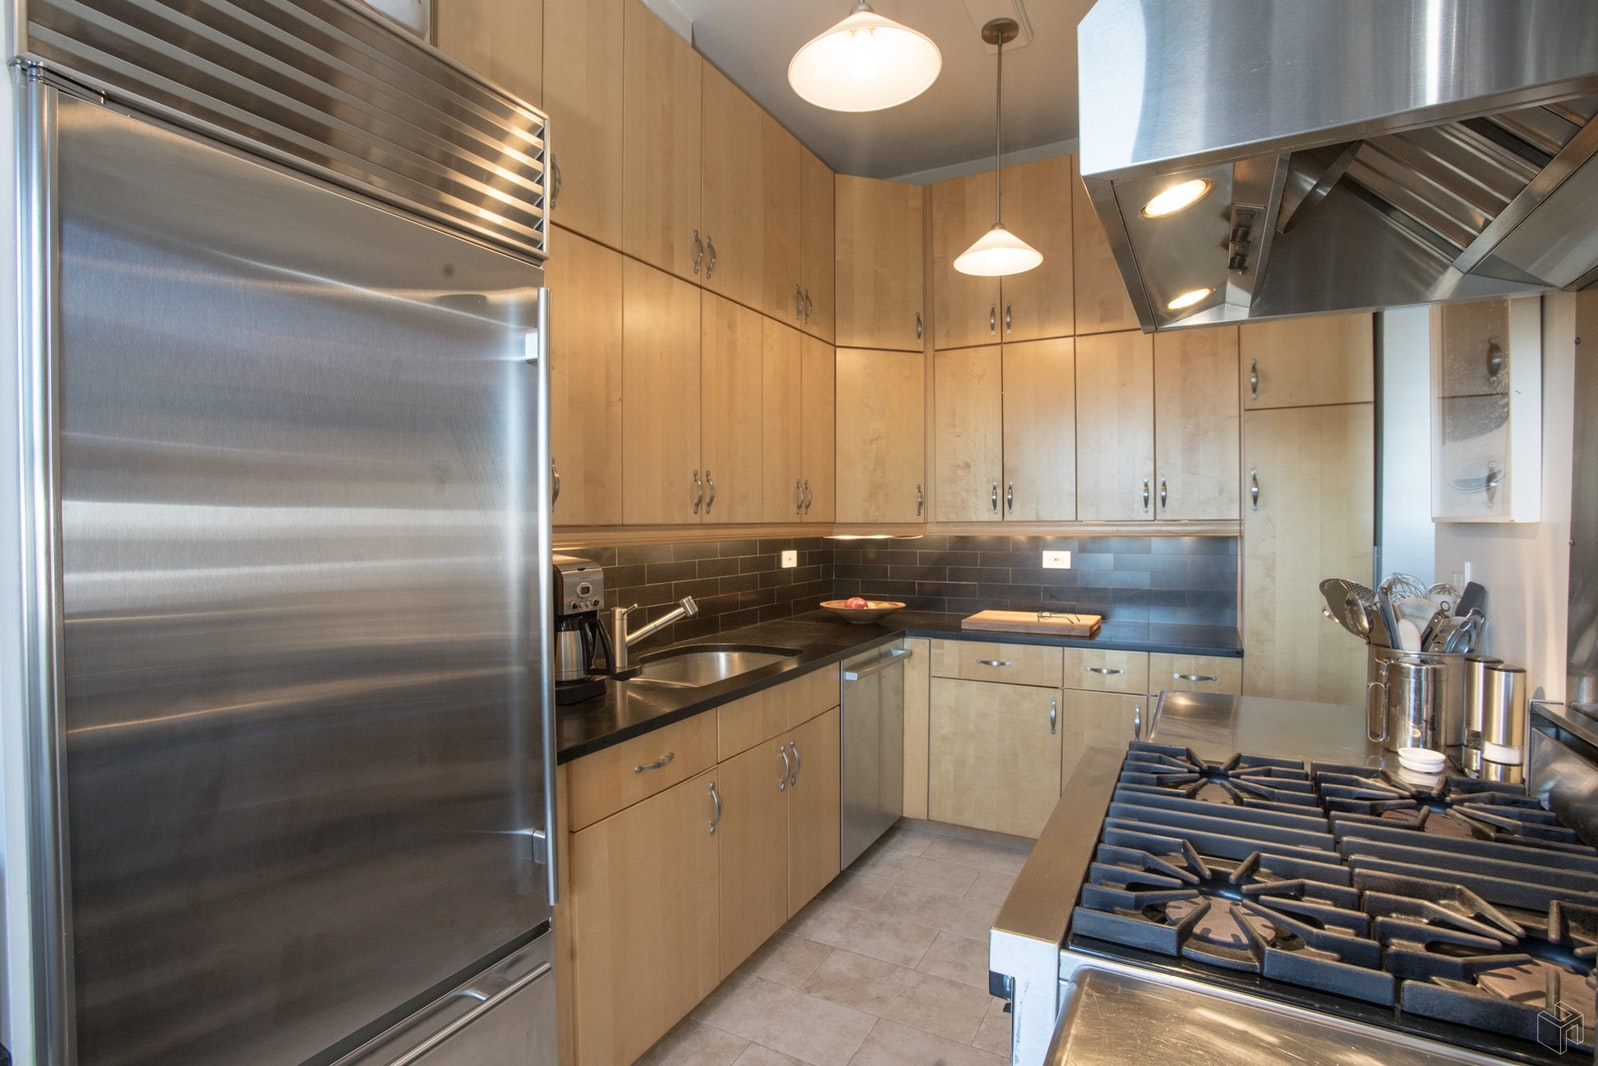 310 WEST 106TH STREET PHC, Upper West Side, $1,150,000, Web #: 18013563